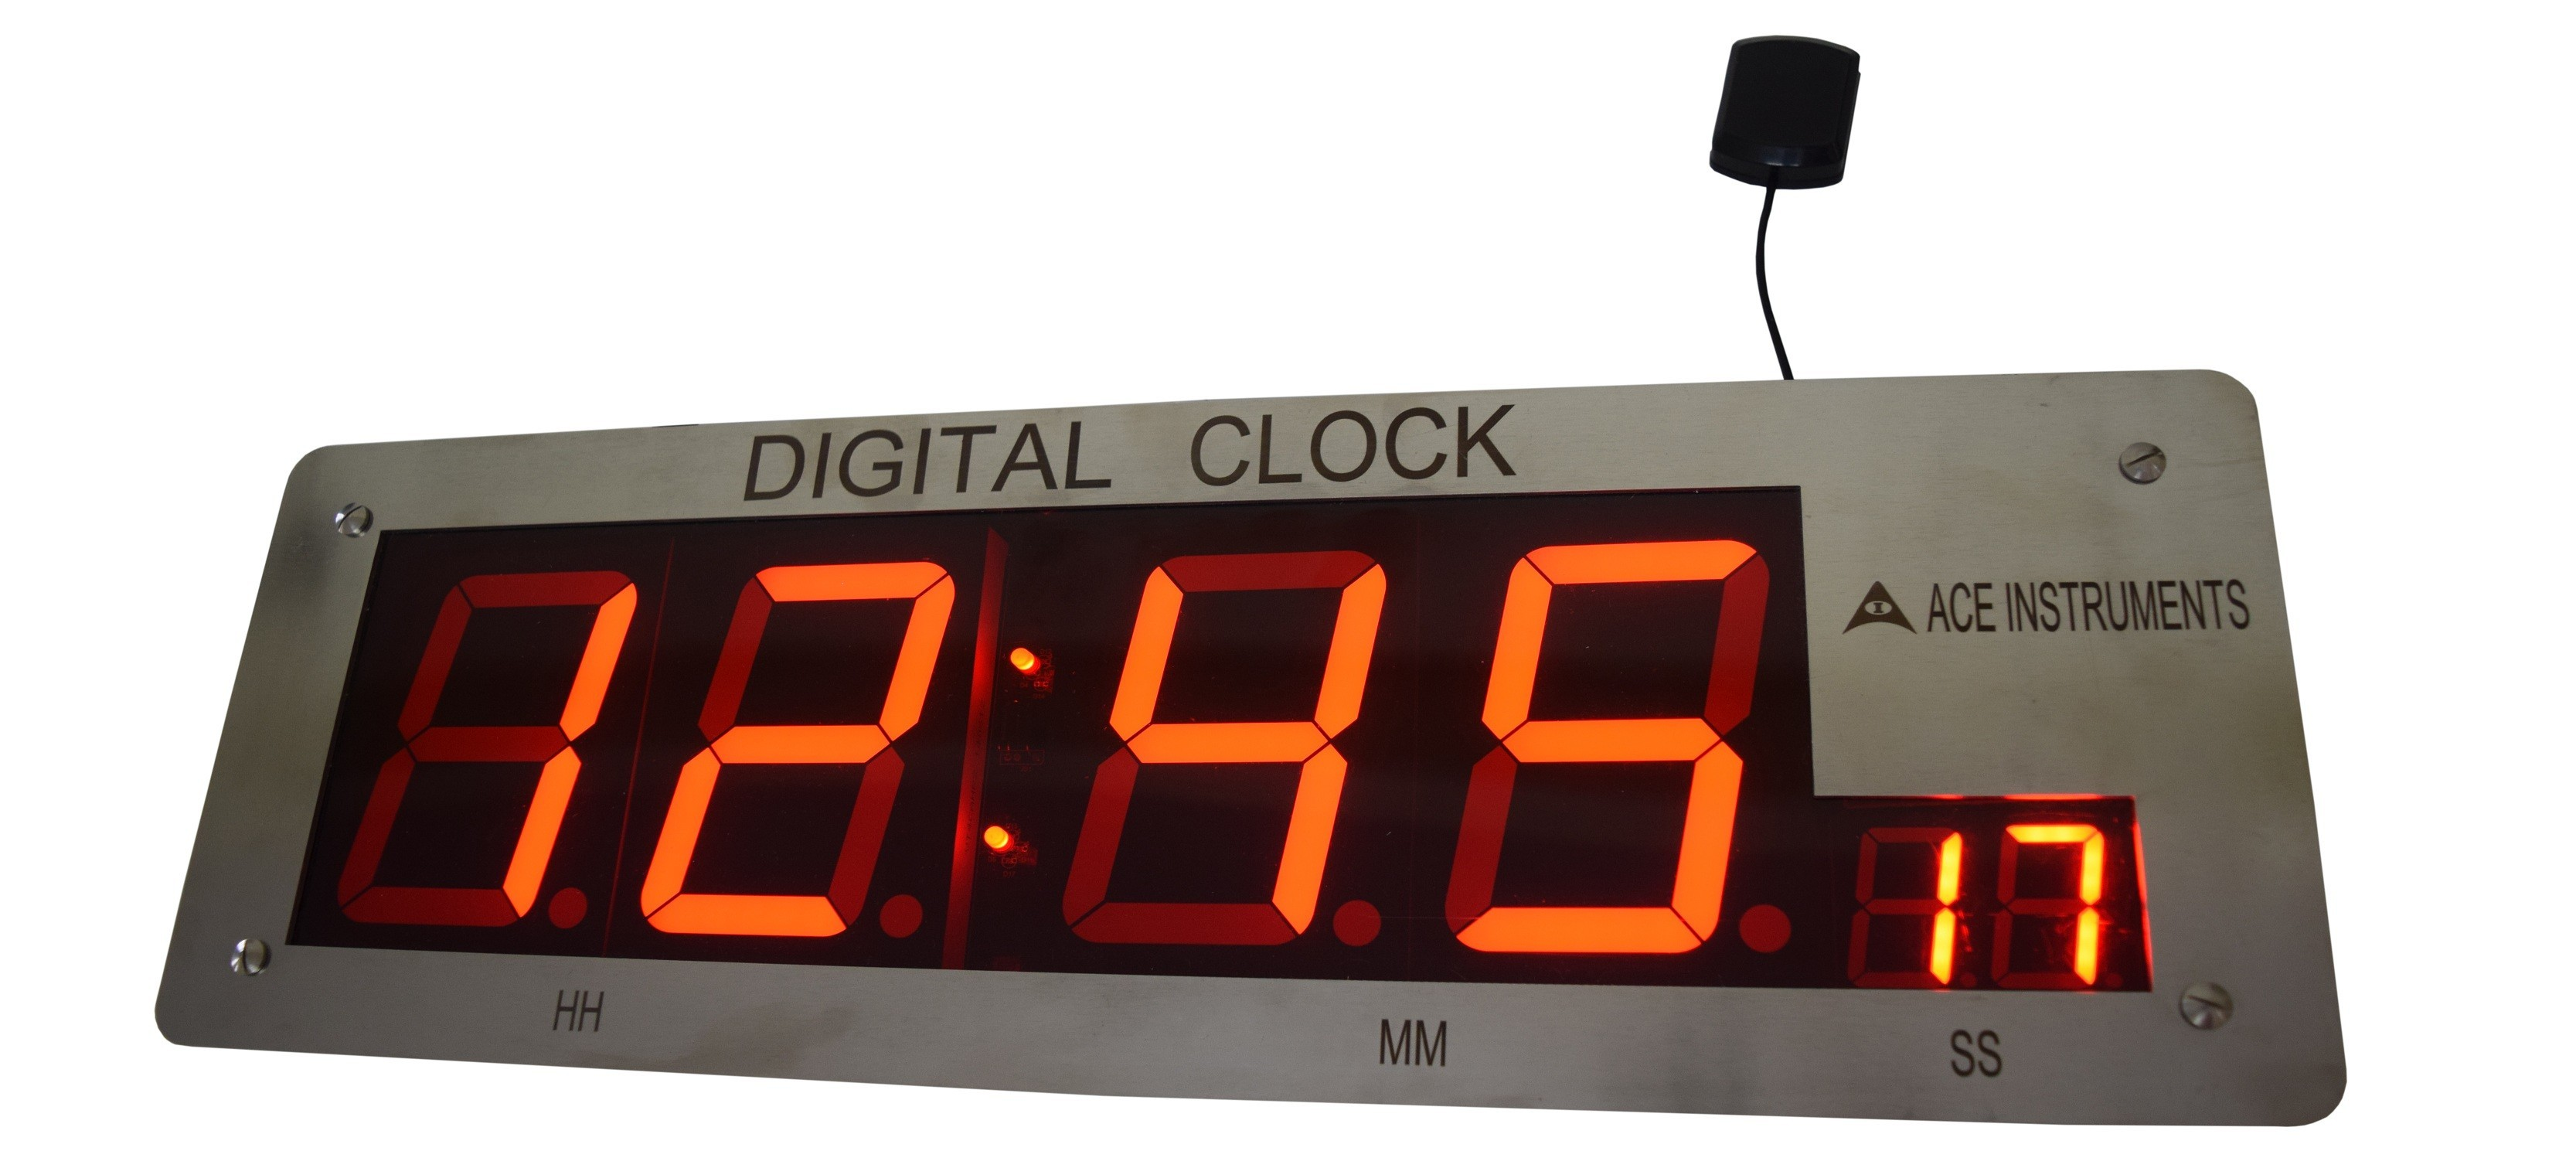 GPS Clock ,GPS Clock online,GPS Server Clock,Digital GPS Clock